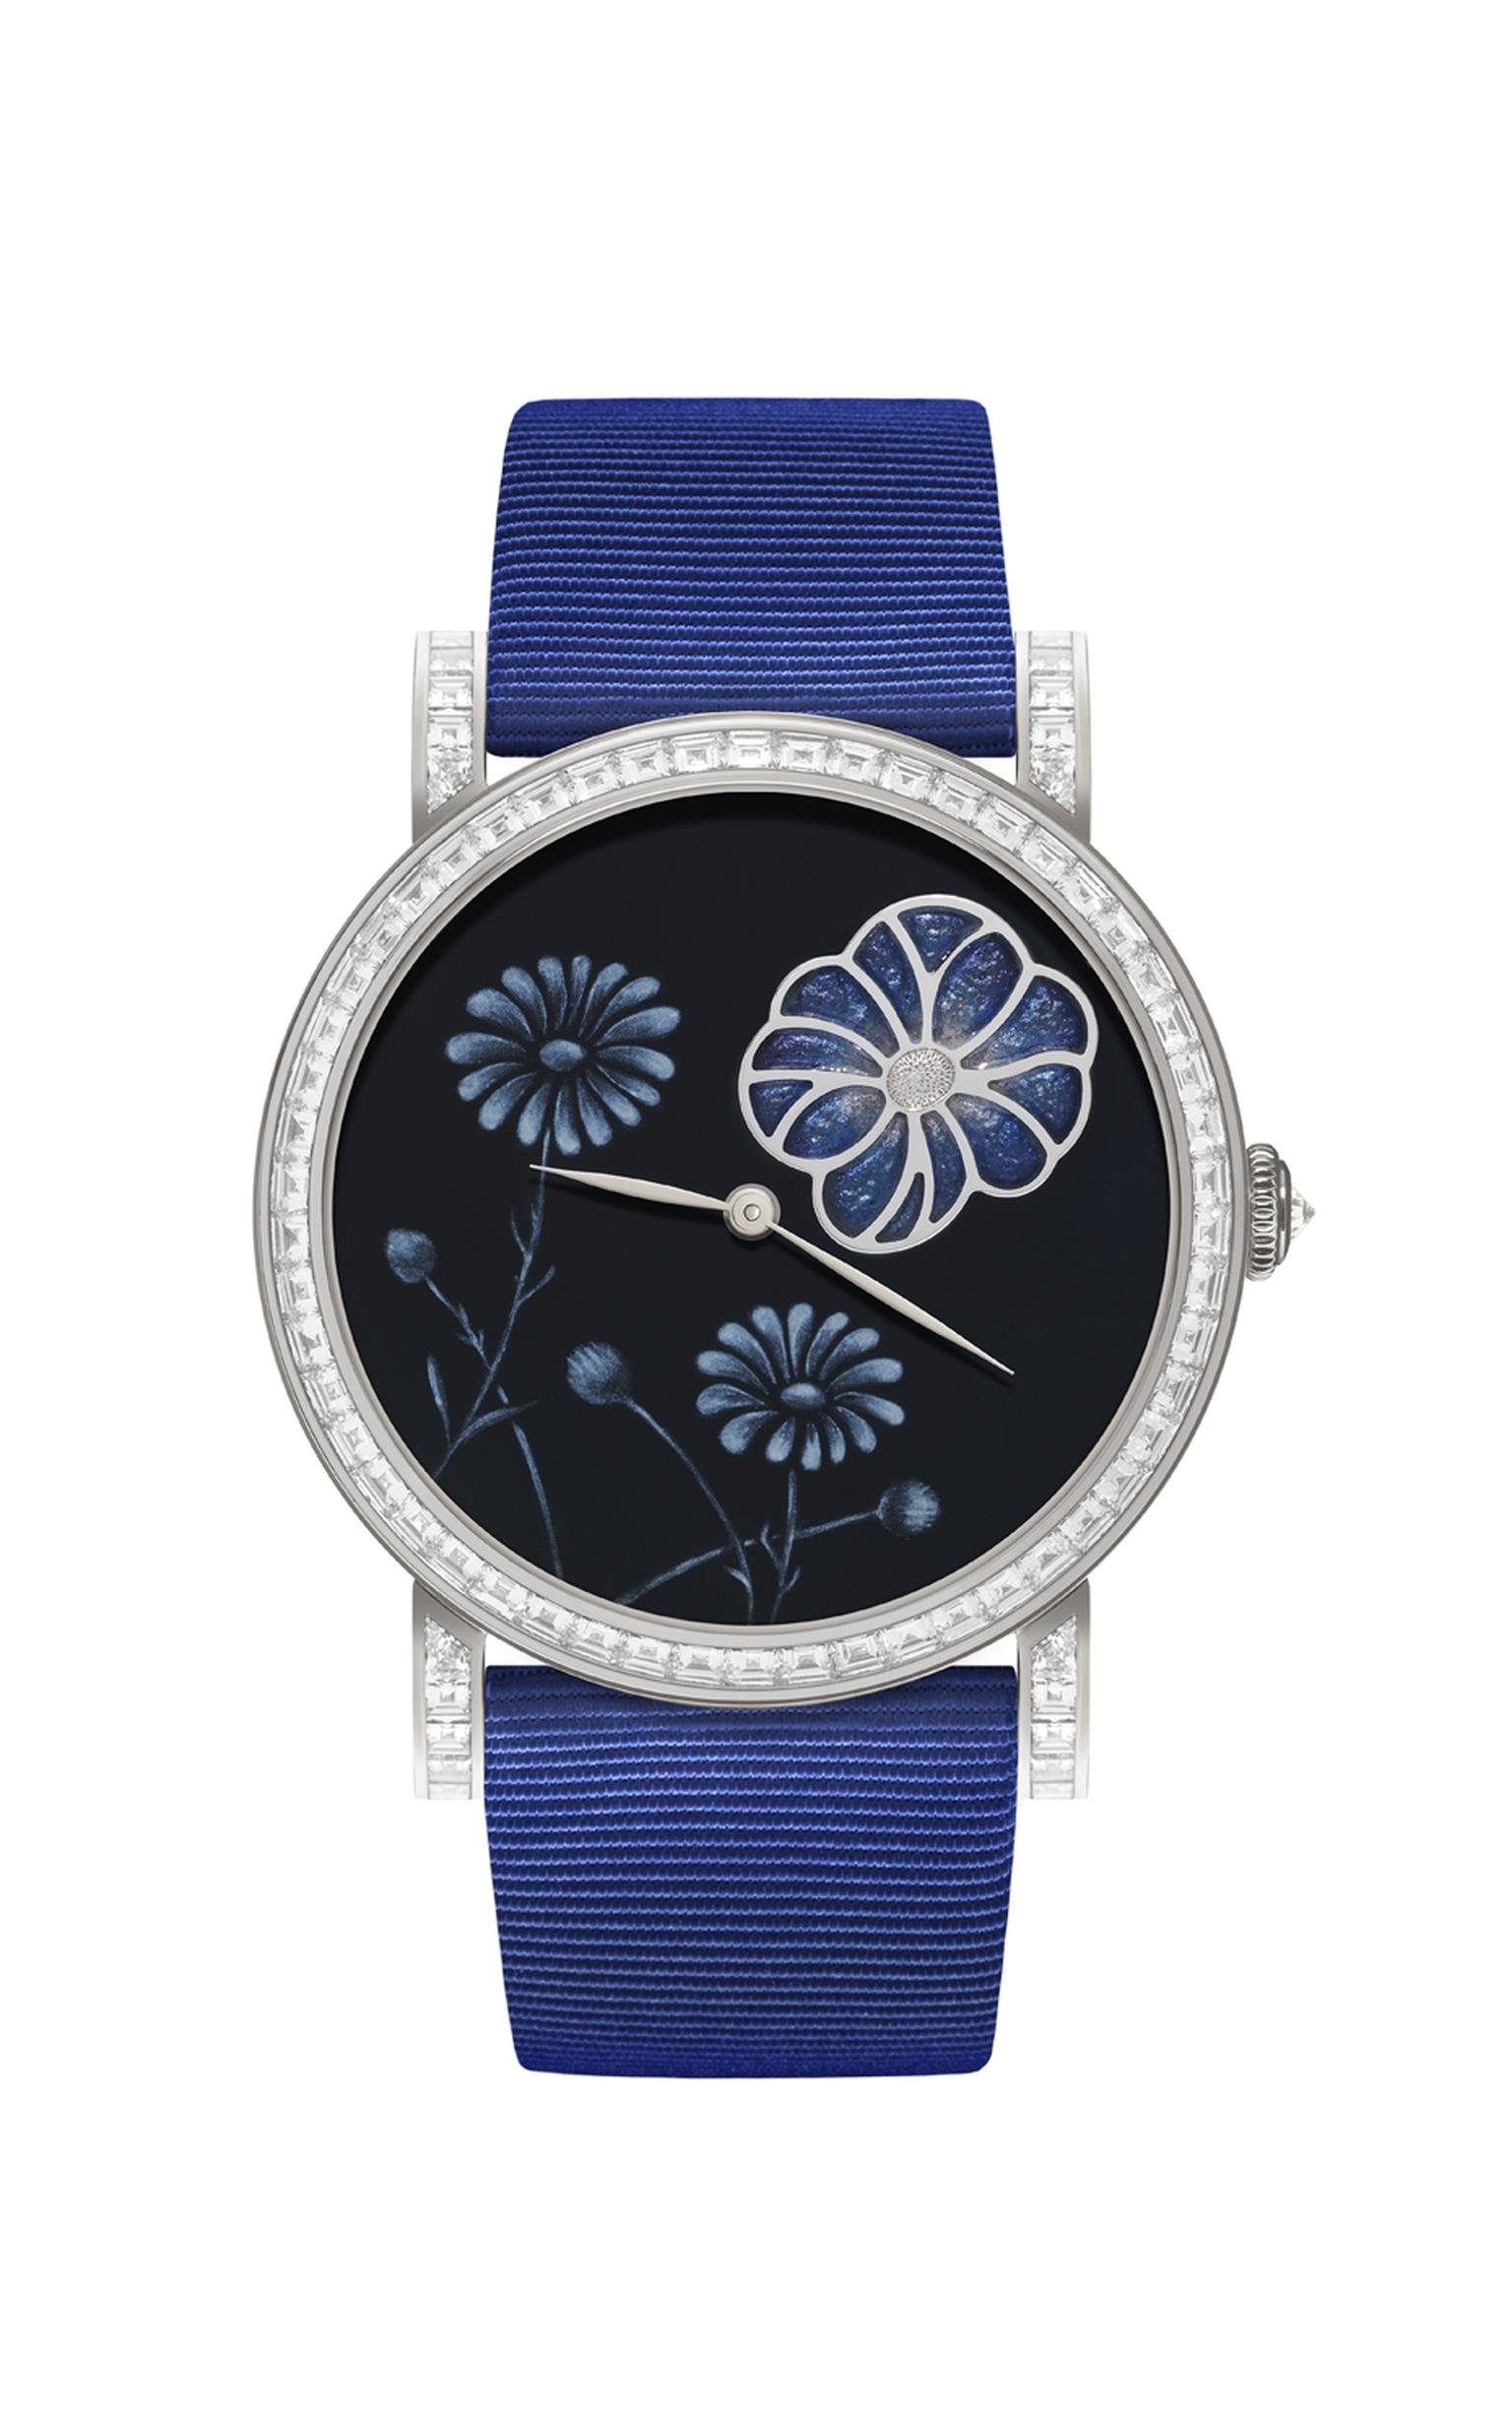 DeLaneau Daisy plique a jour watch features an intricate Grand Feu enamel dial and a white gold case set with 74 baguette-cut diamonds and 116 brilliant-cut diamonds, with a diamond-embedded crown.